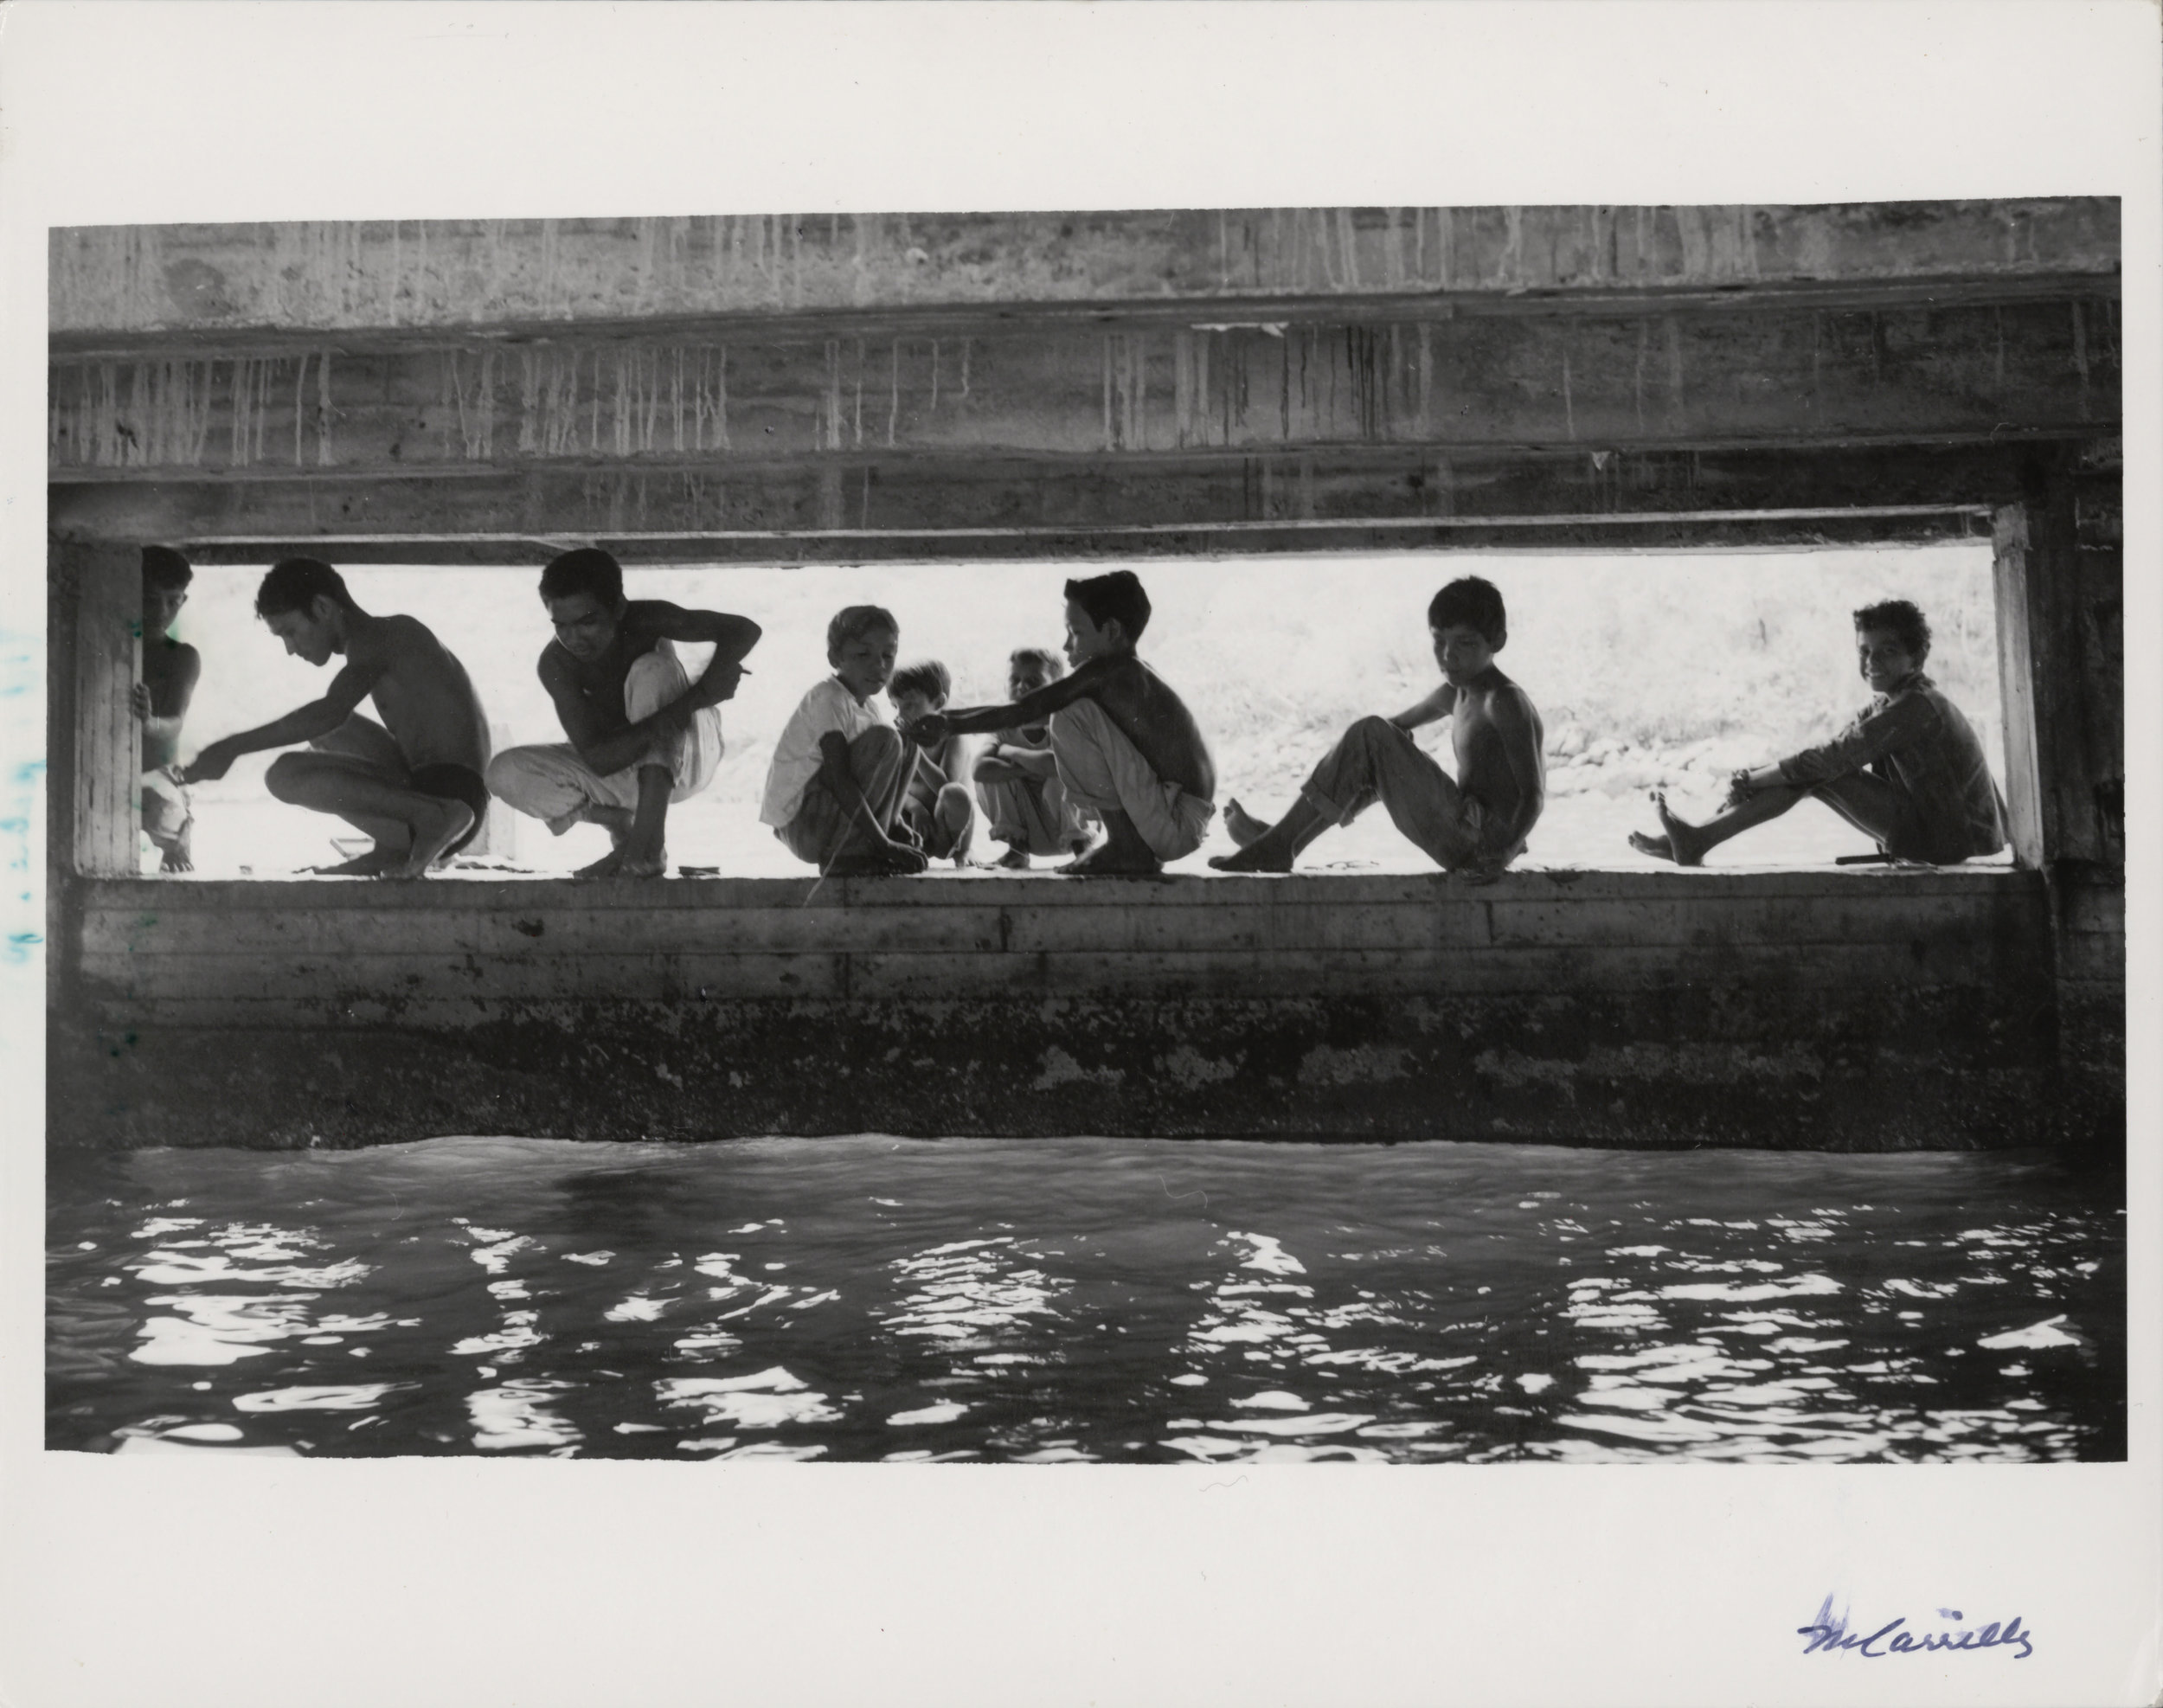 Boys on Wall at Water's Edge , c. 1955-75. Black & White photograph on paper. 8 x 10